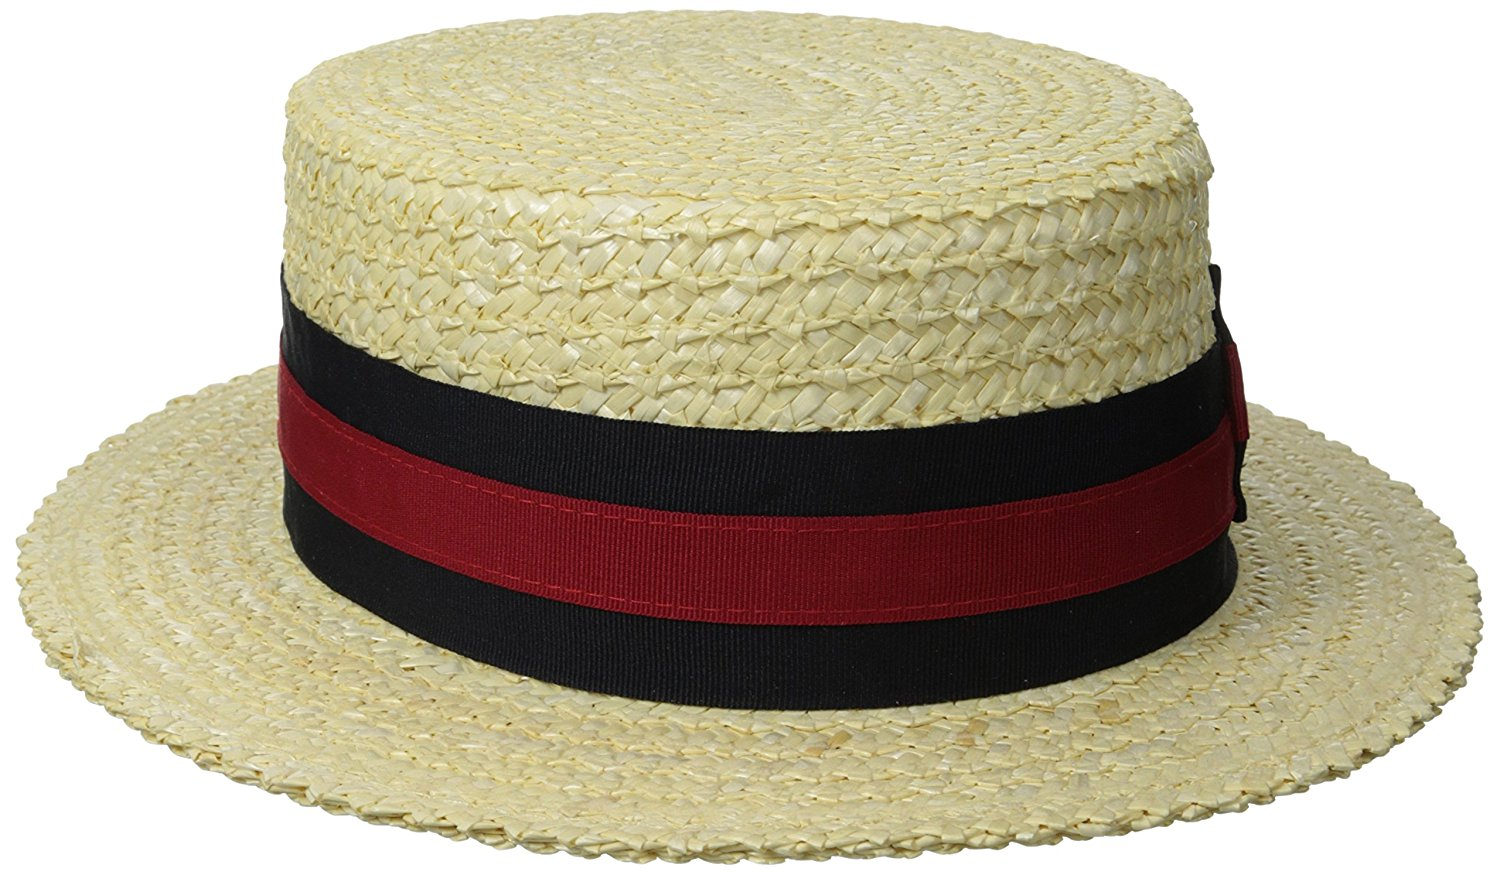 Boater Hat - SAFIMEX JOINT STOCK COMPANY 0d75e0a14dd6